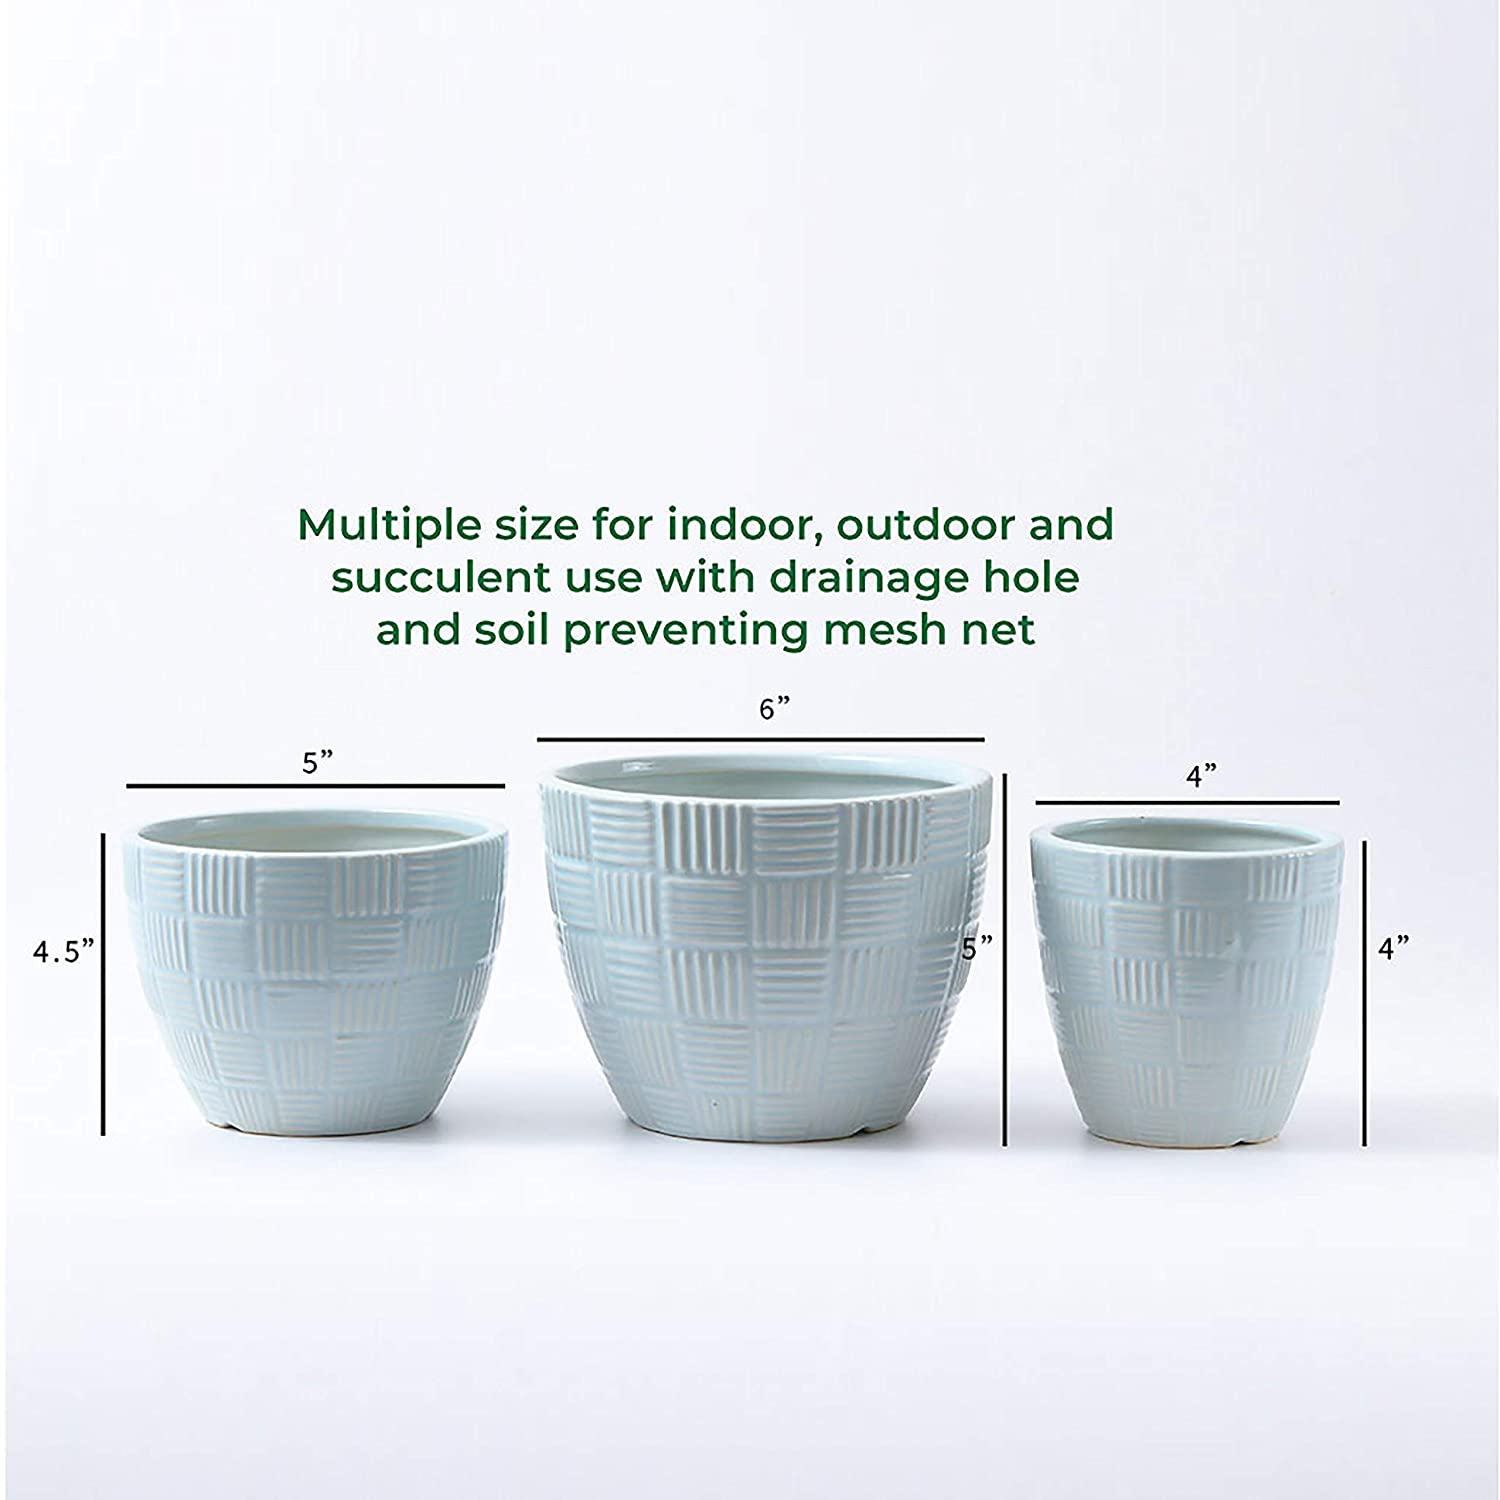 Large 6 Inch Medium 5 Small 4 Plant Pot by Naturish Set of 3 Cocoa Brown Anti Slip Glazed Ceramic Flower Pots with Drainage Holes for Indoor Planters Outdoor Garden Planters and Succulent Pot Use